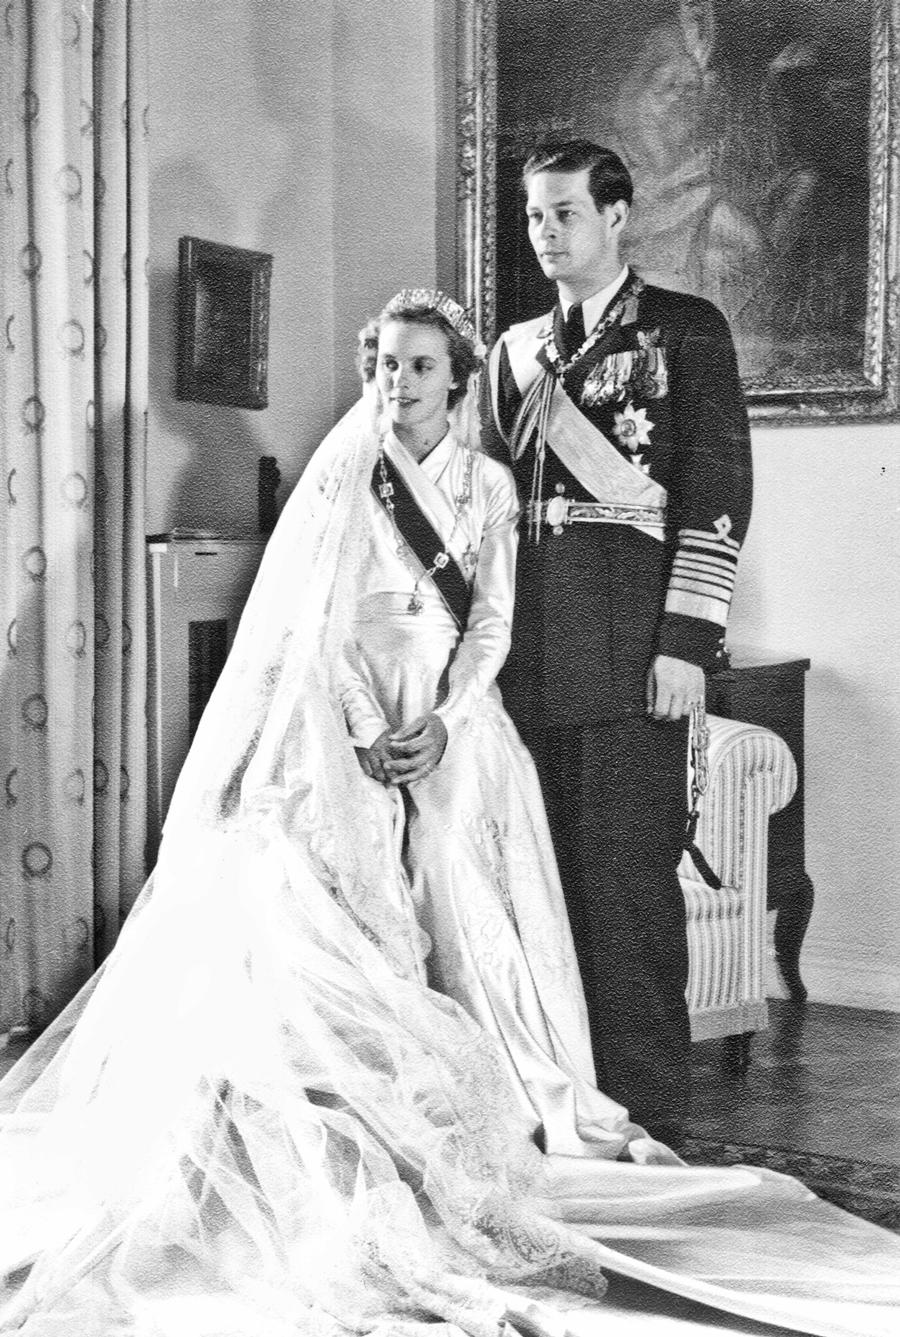 How well do you know these historic members of society's upper echelon? This Day in History: September 18th- The Princess Who ...